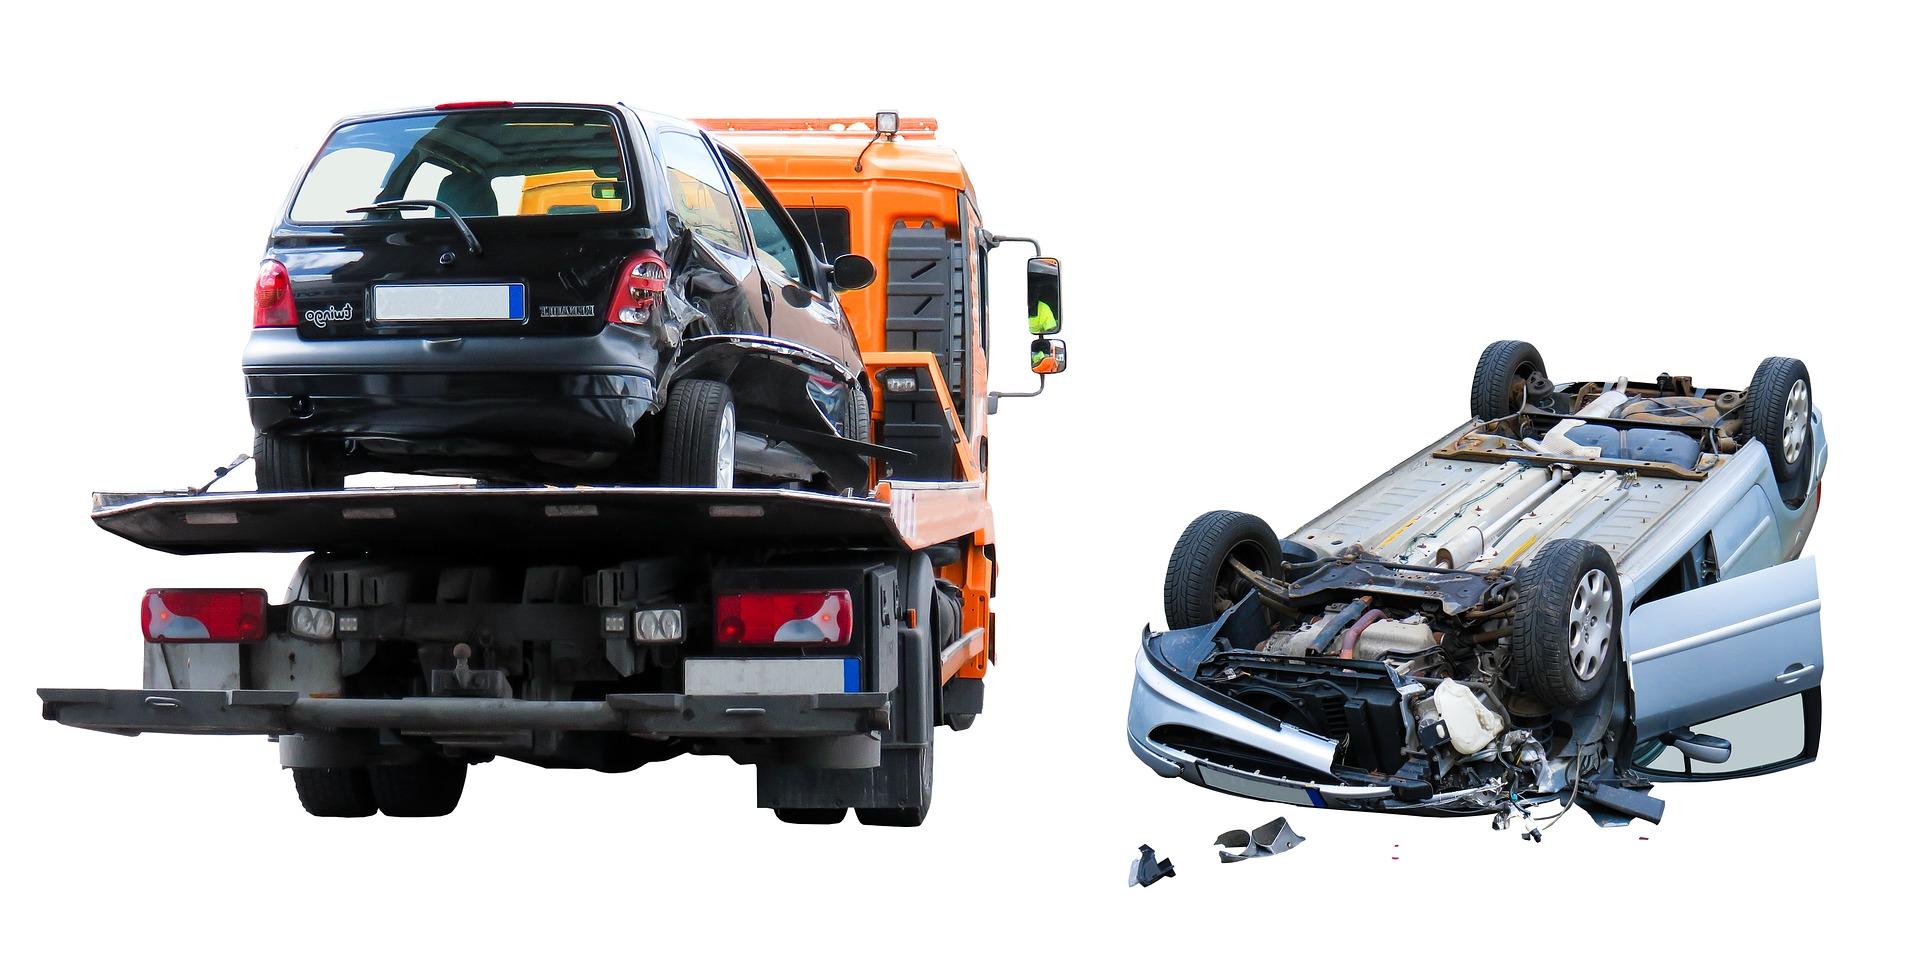 car-accidents-attorney-indianapolis IN - Rowe and Hamilton